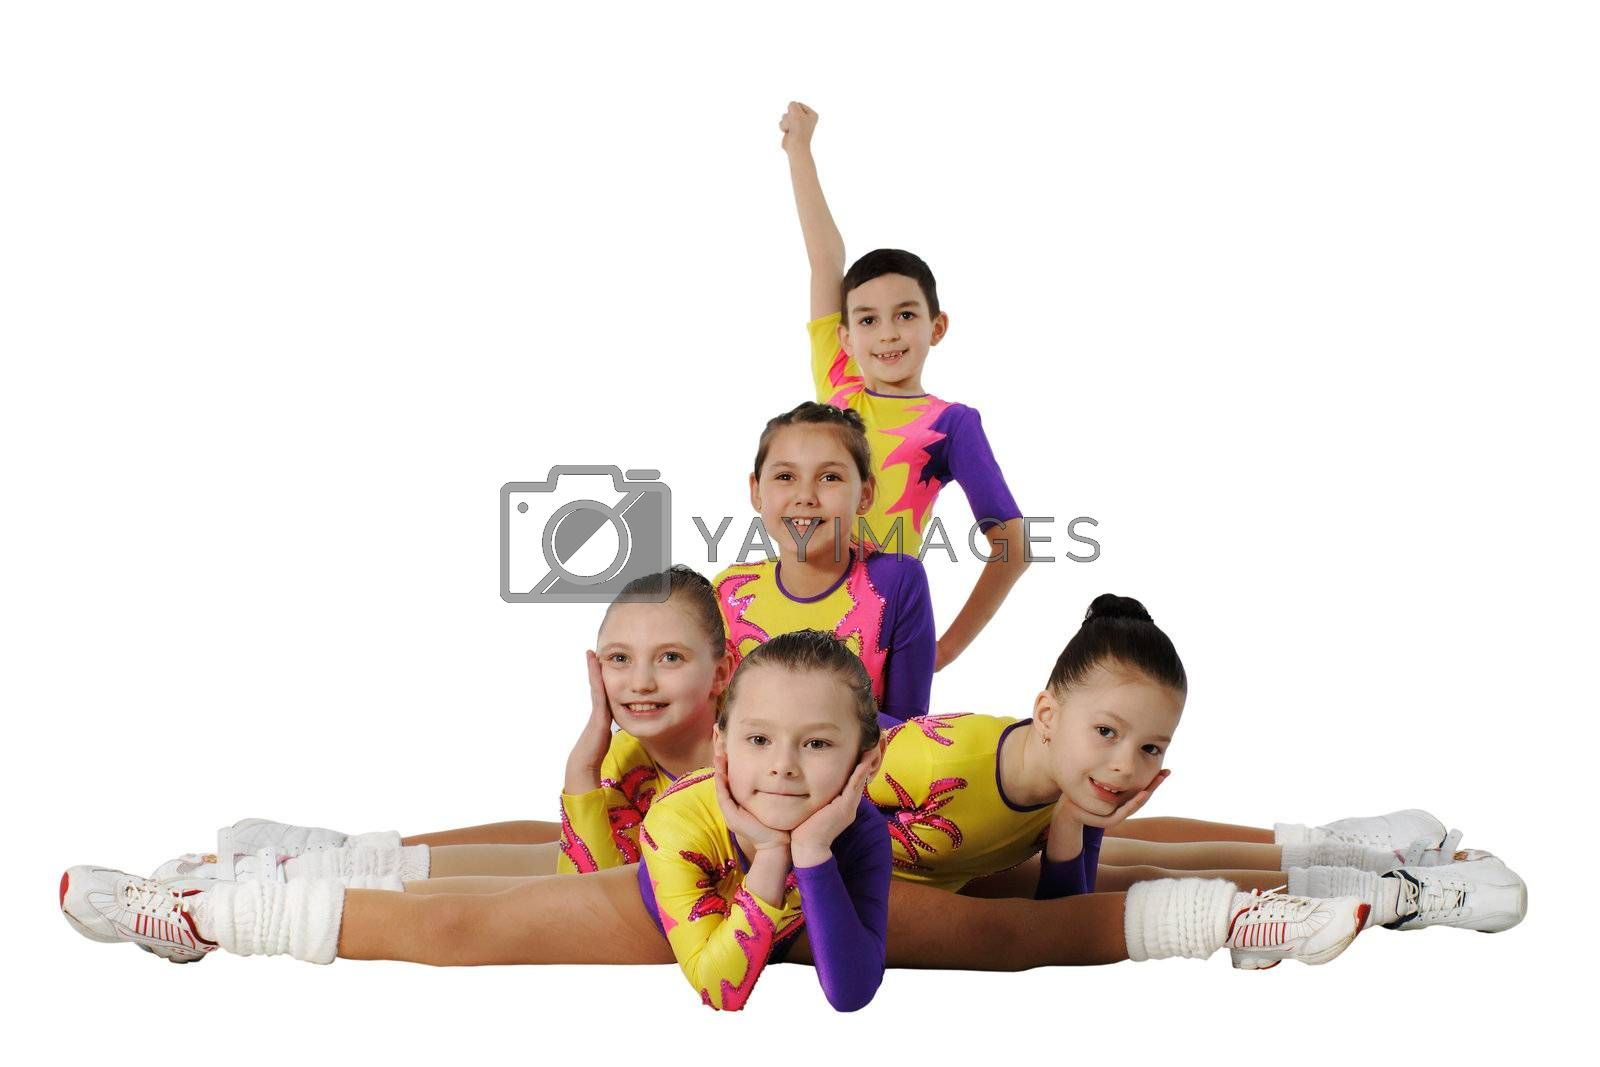 Performance by the young athlete aerobics on the white background